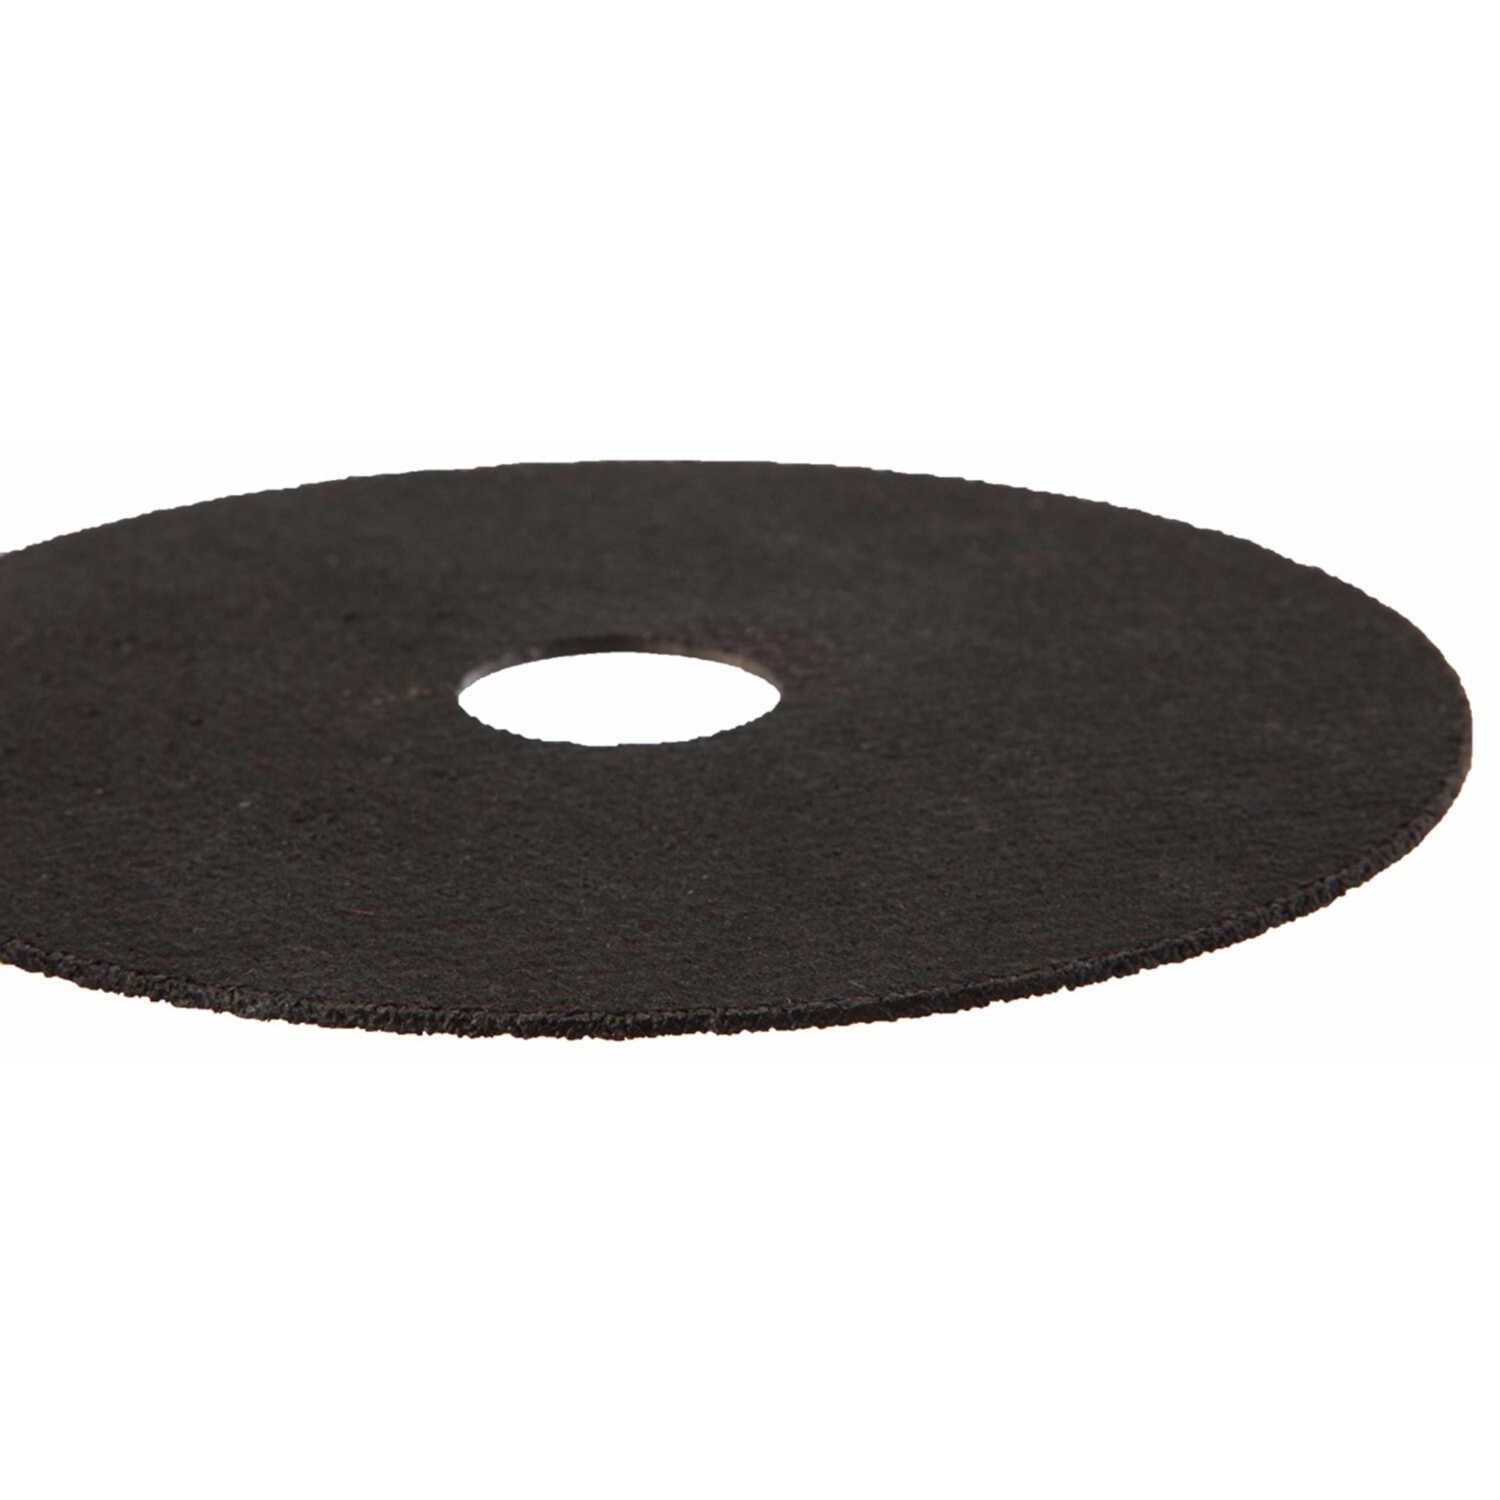 Forney  6 in. Dia. x 7/8 in.  Aluminum Oxide  Metal Cut-Off Wheel  1 pc.